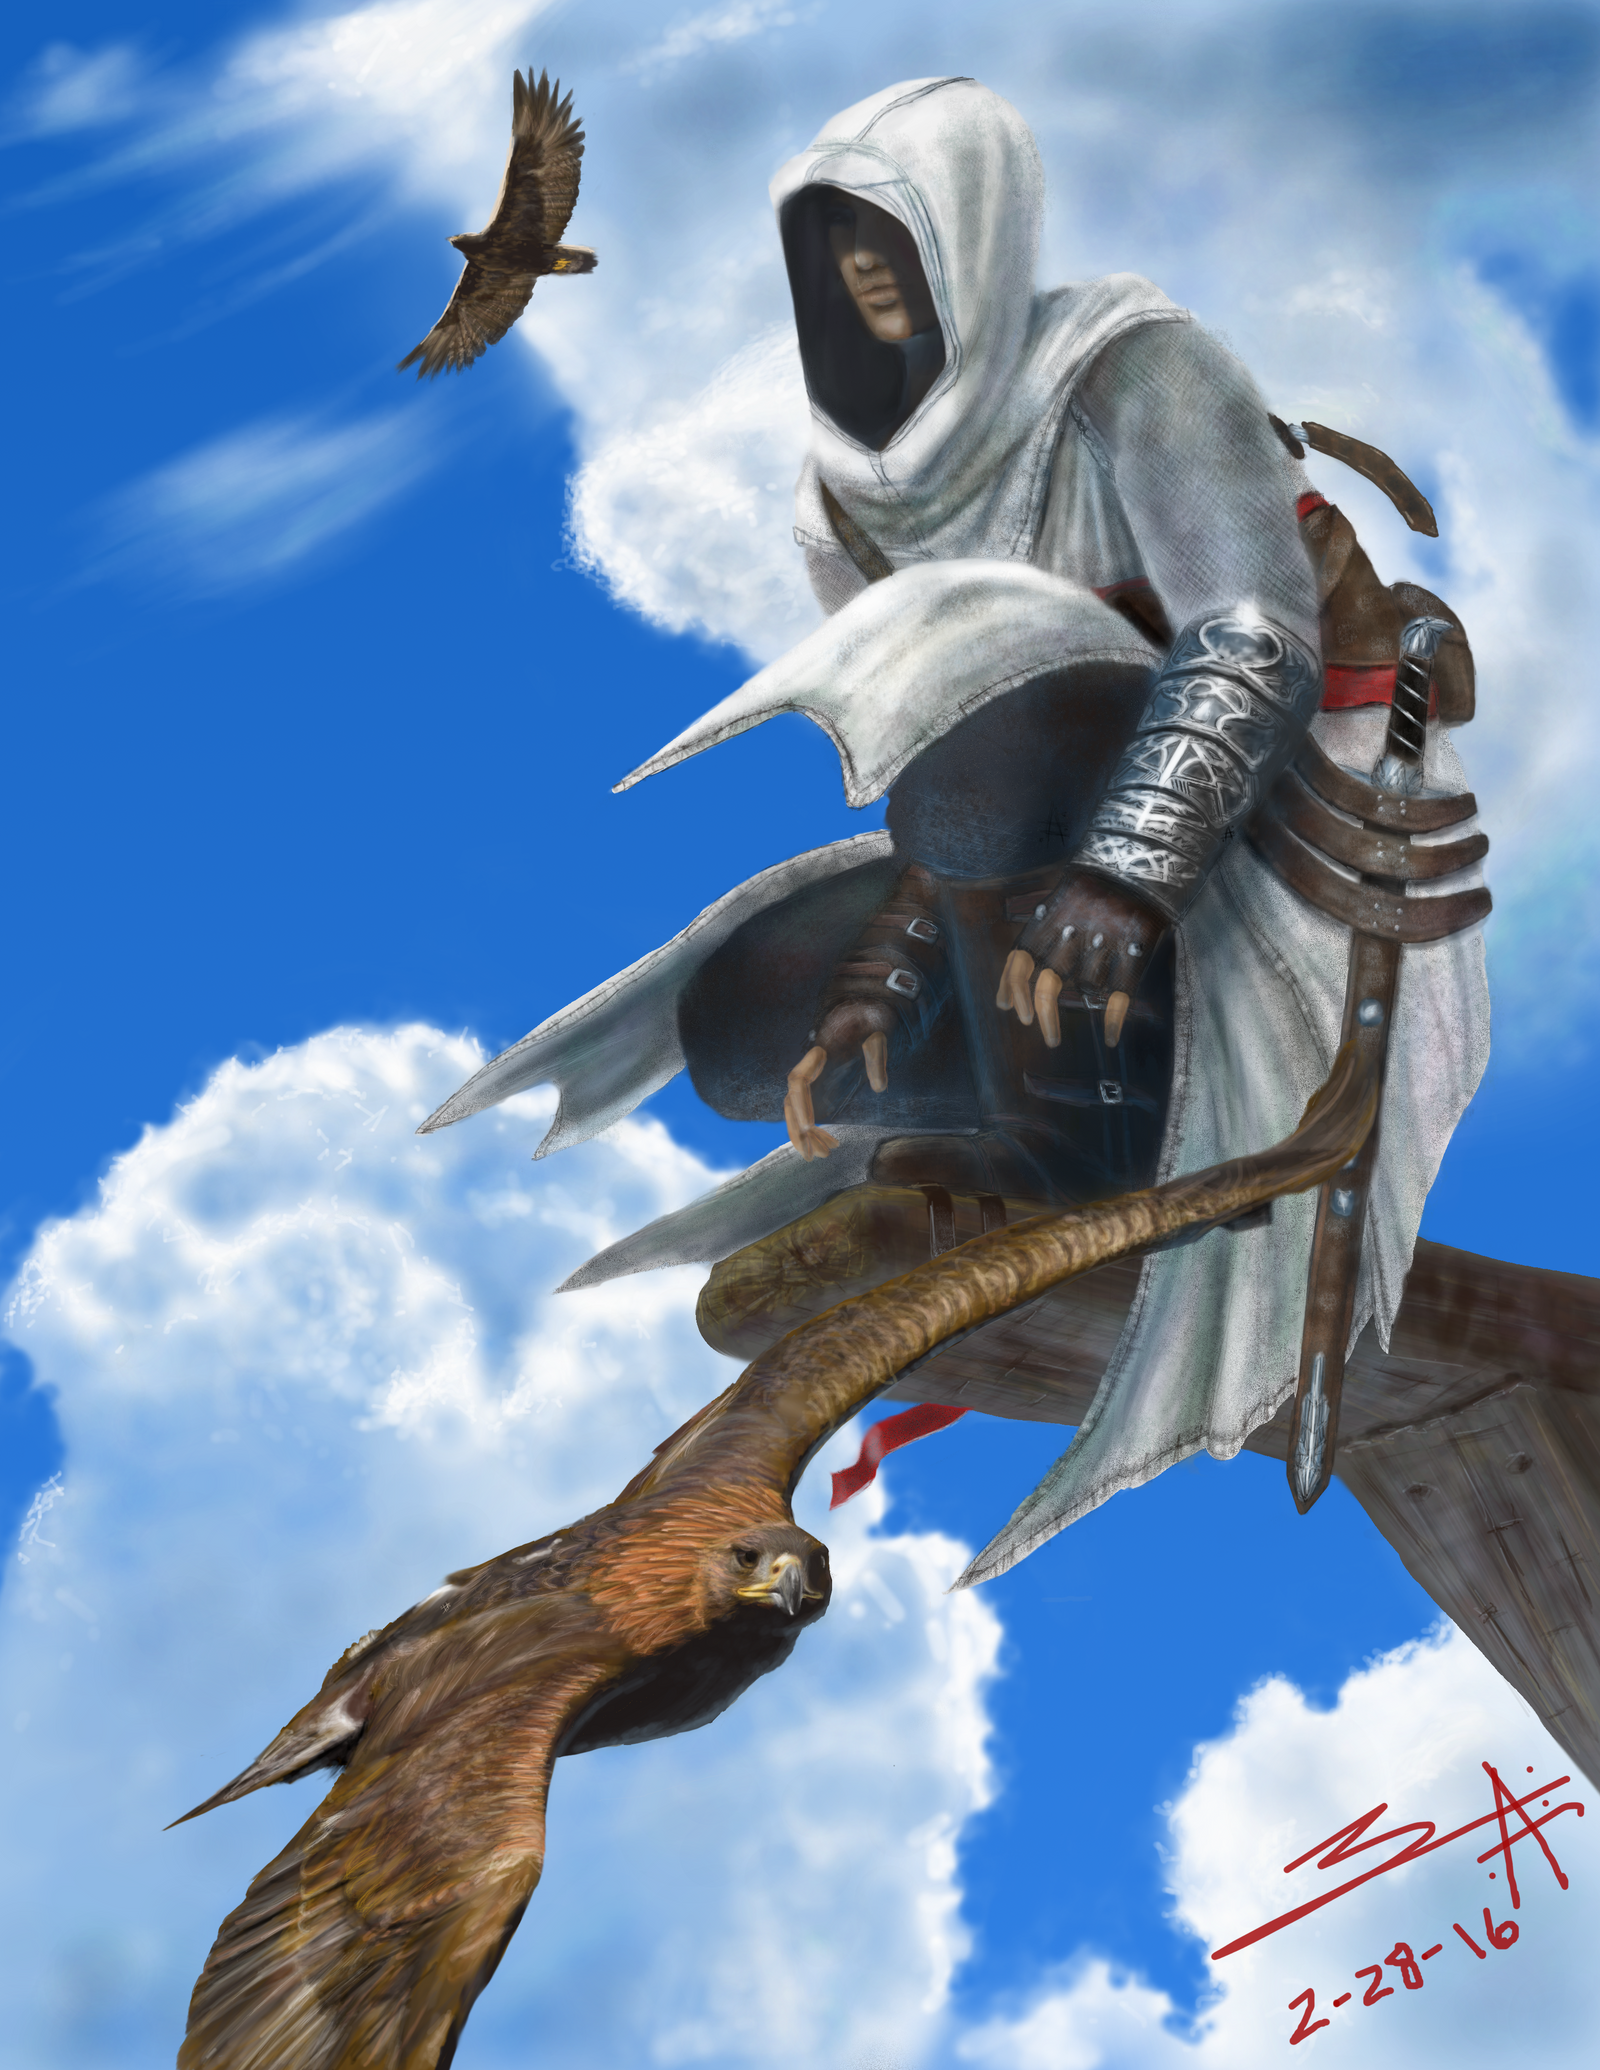 altair_by_s_k_y_f_r_e_e-d9tiehp.png